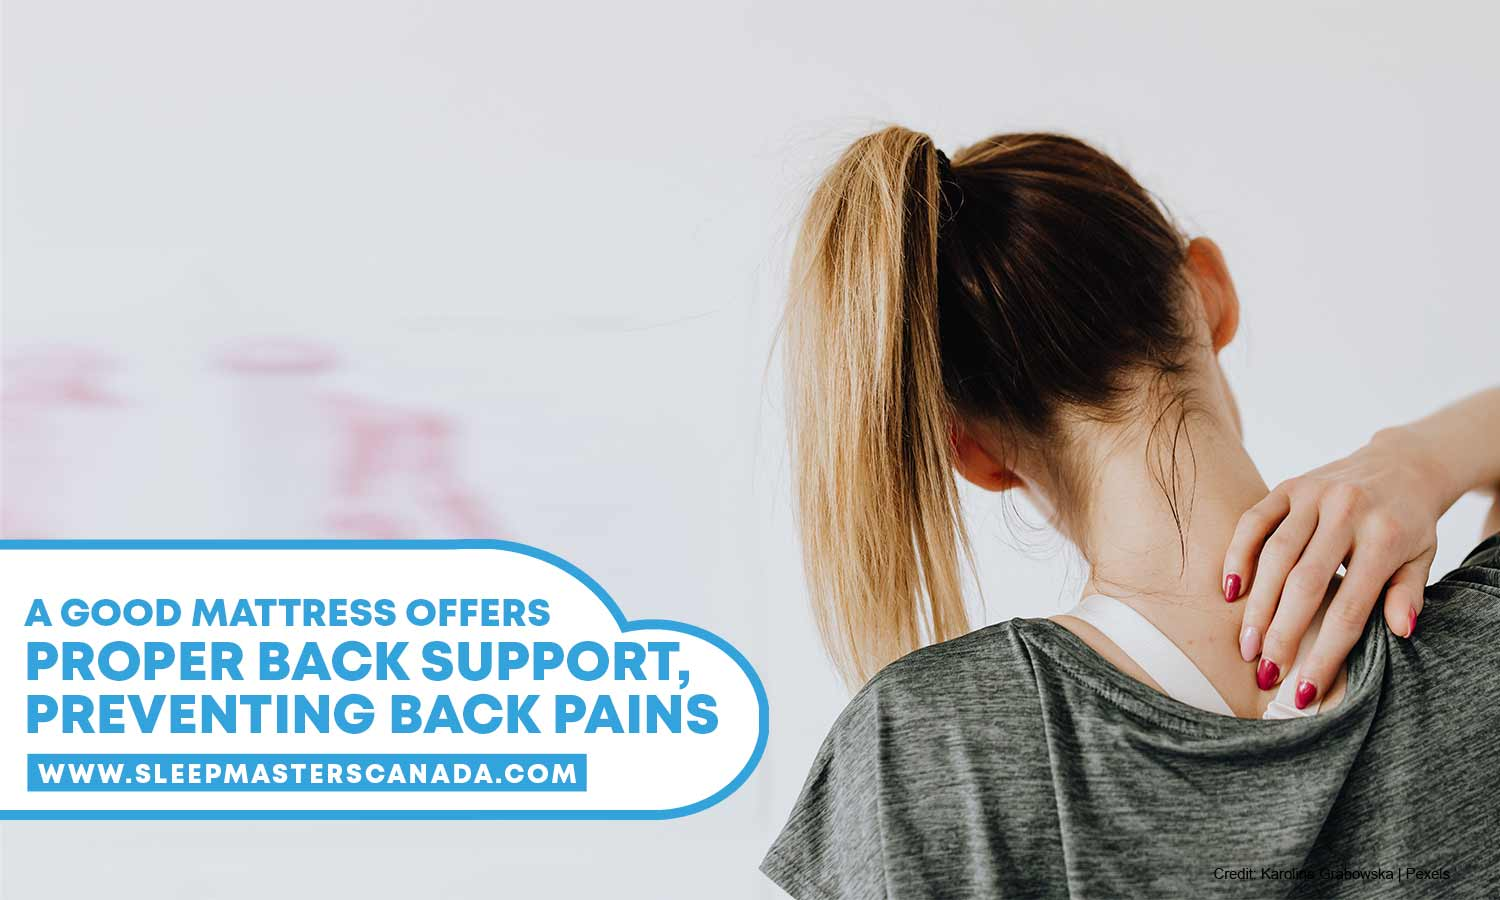 A good mattress offers proper back support, preventing back pains